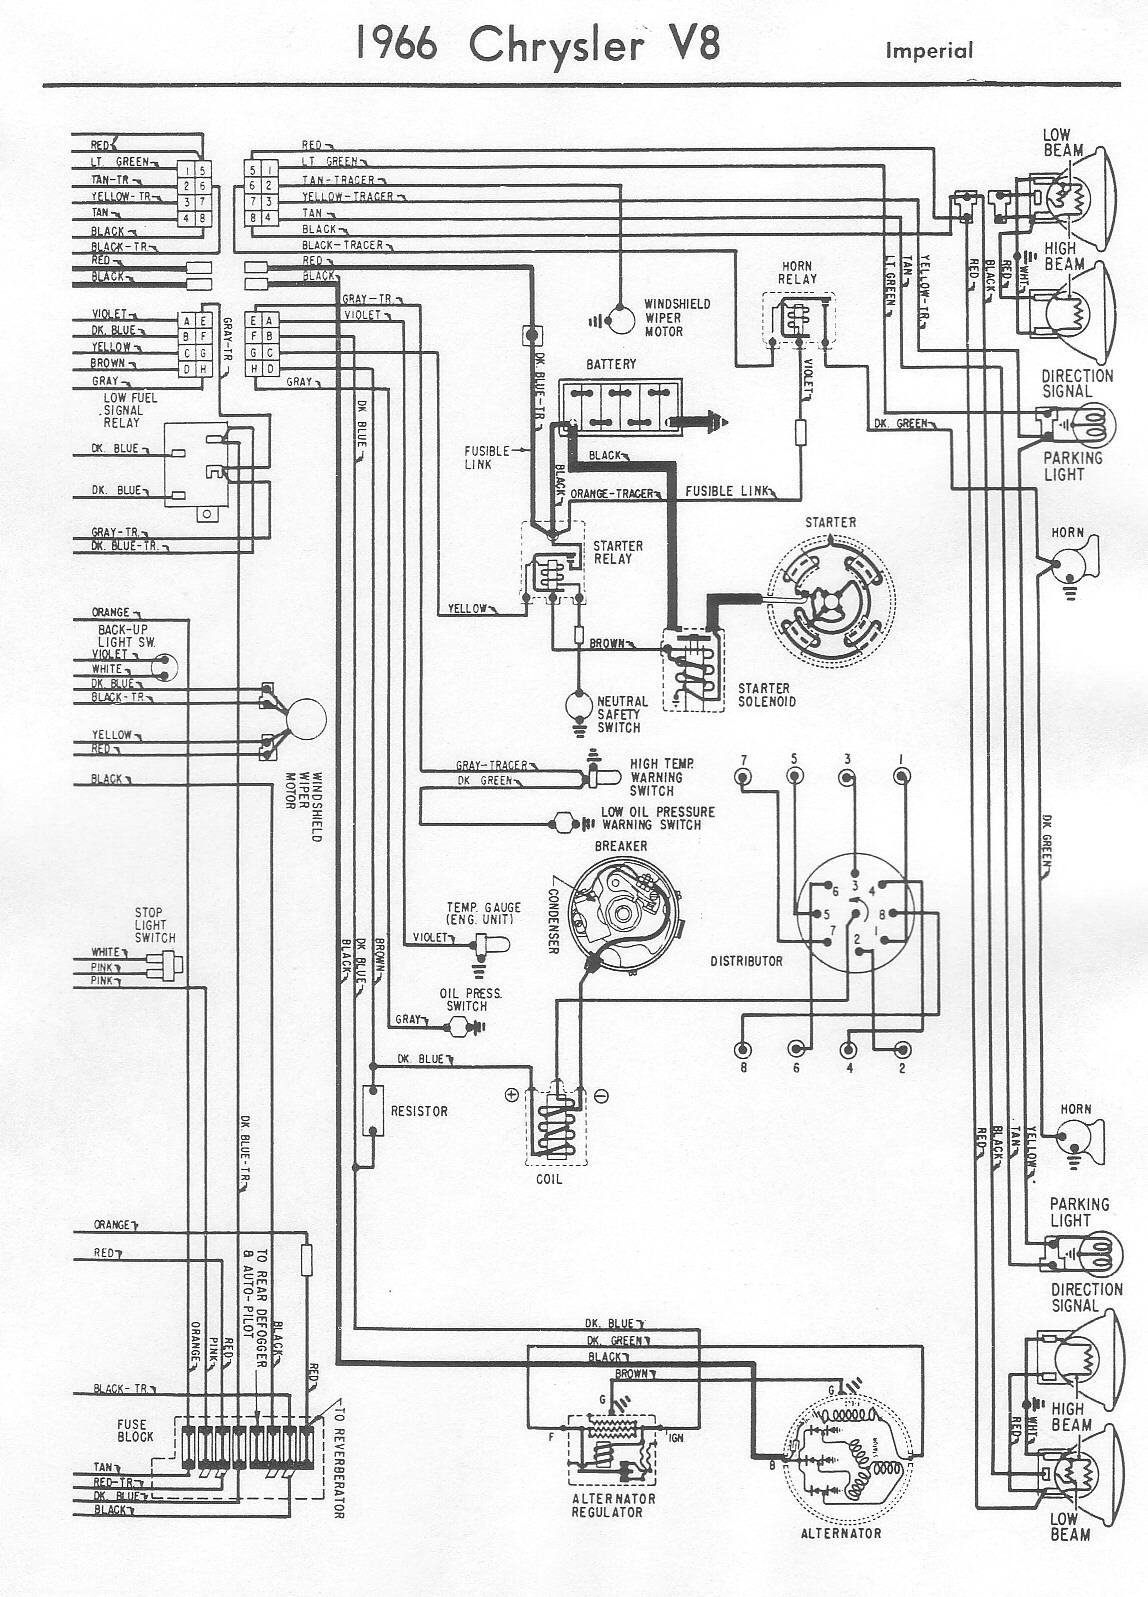 1966+Chrysler+Imperial+Wiring+Diagram october 2014 ~ circuit diagram for learning alpine mrp m500 wiring diagram at suagrazia.org